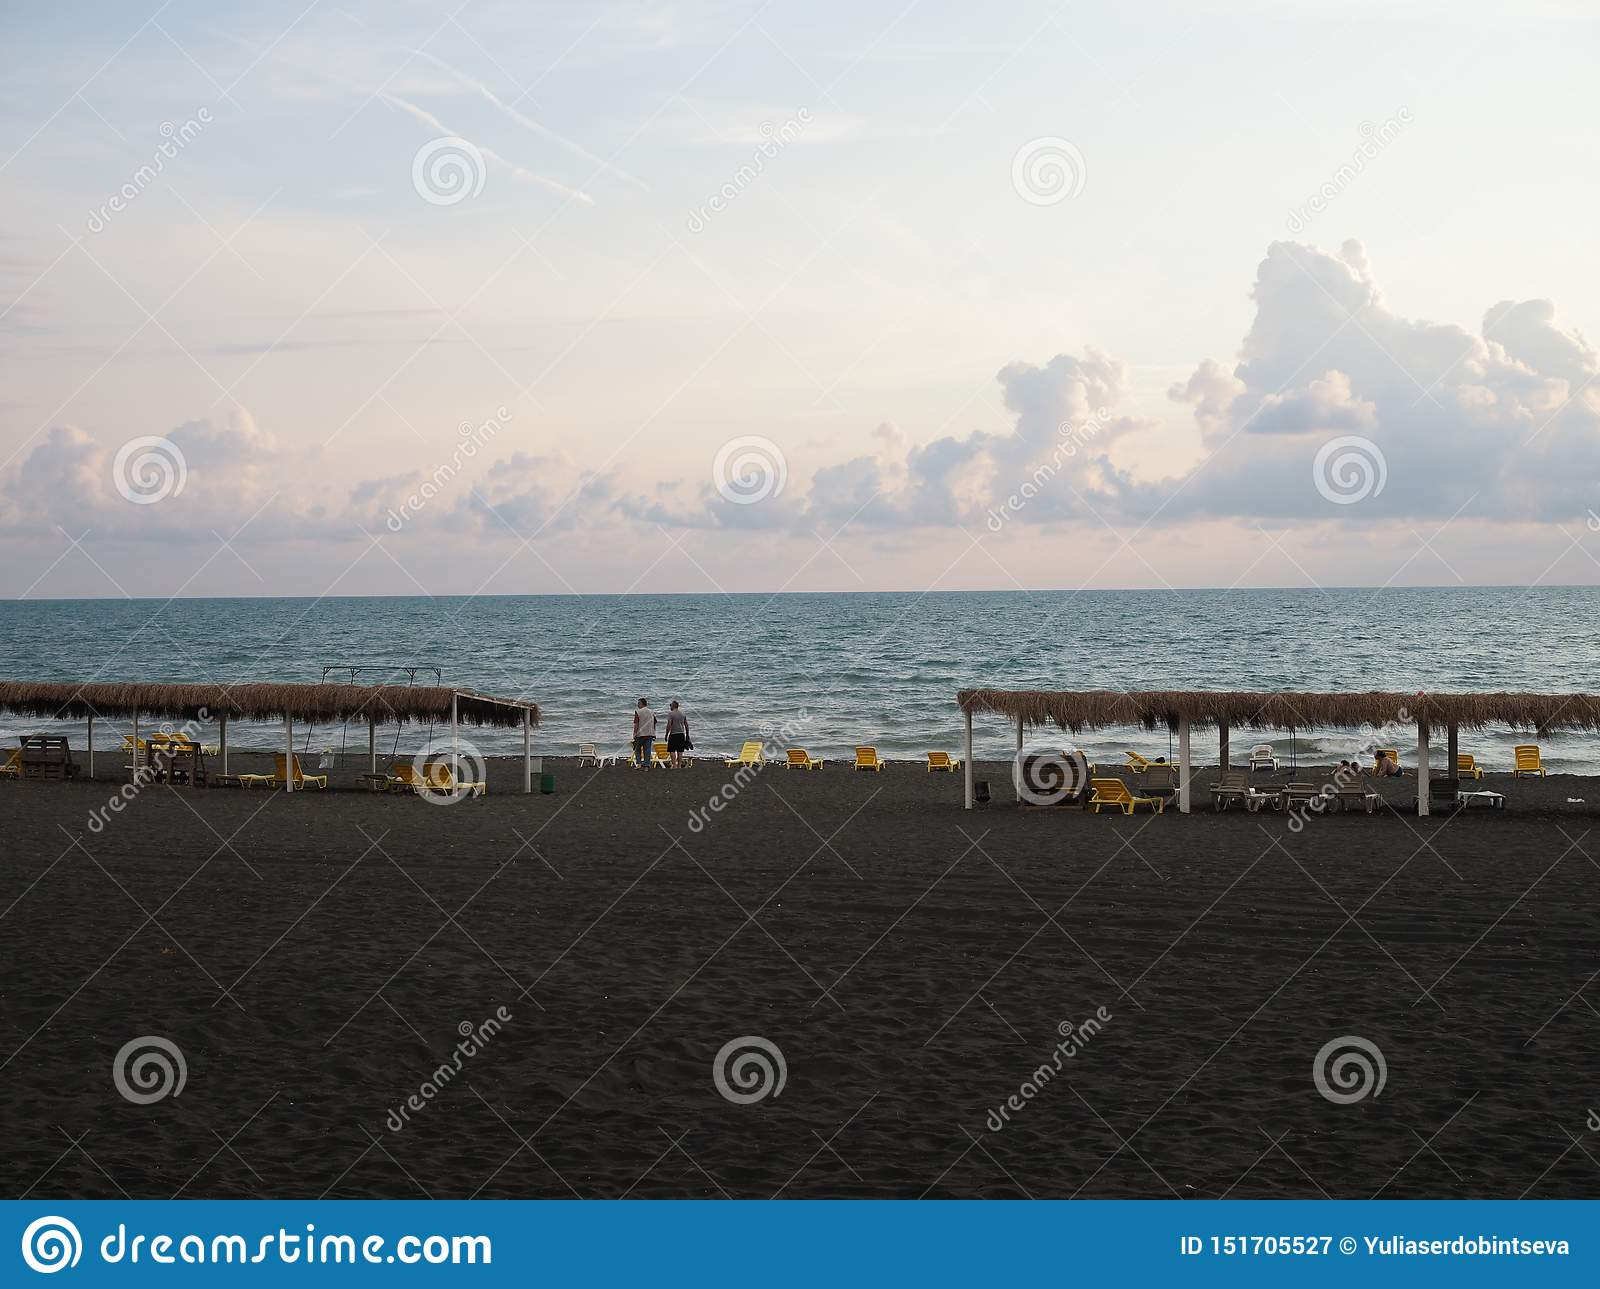 Deserted beach in Georgia with black sand. Sanctions against Russia. Absence of tourists in the middle of the season. Georgia,